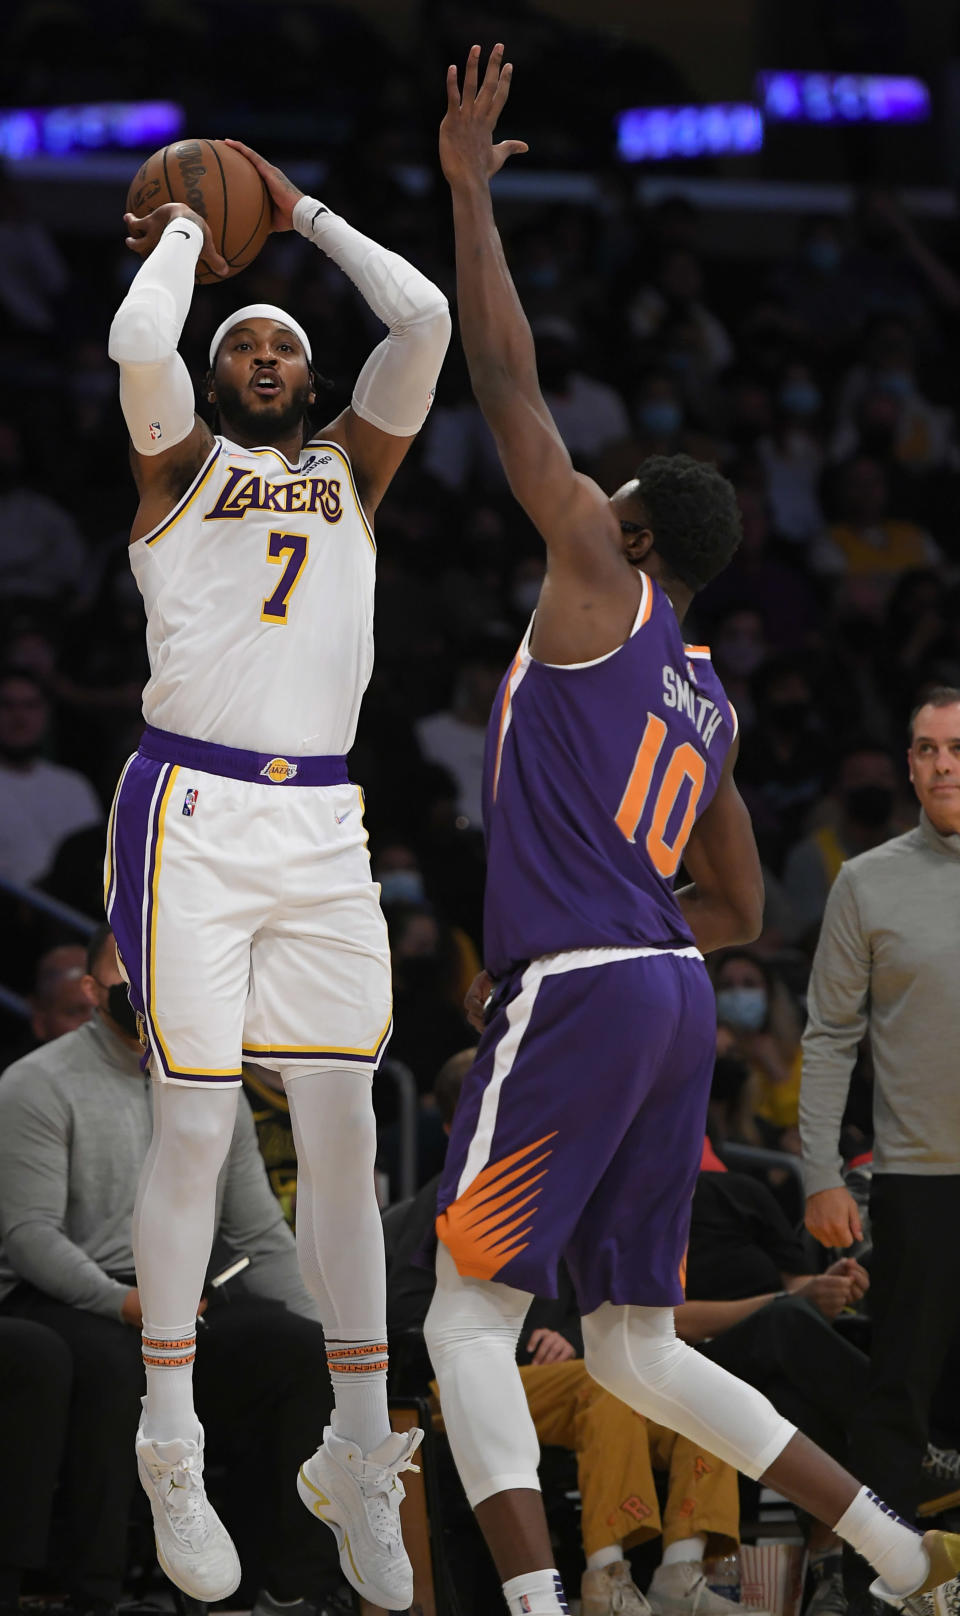 Los Angeles Lakers forward Carmelo Anthony (7) shoots the ball over Phoenix Suns forward Jalen Smith (10) in the second half of a preseason NBA basketball game in Los Angeles, Sunday, Oct. 10, 2021. (AP Photo/John McCoy)